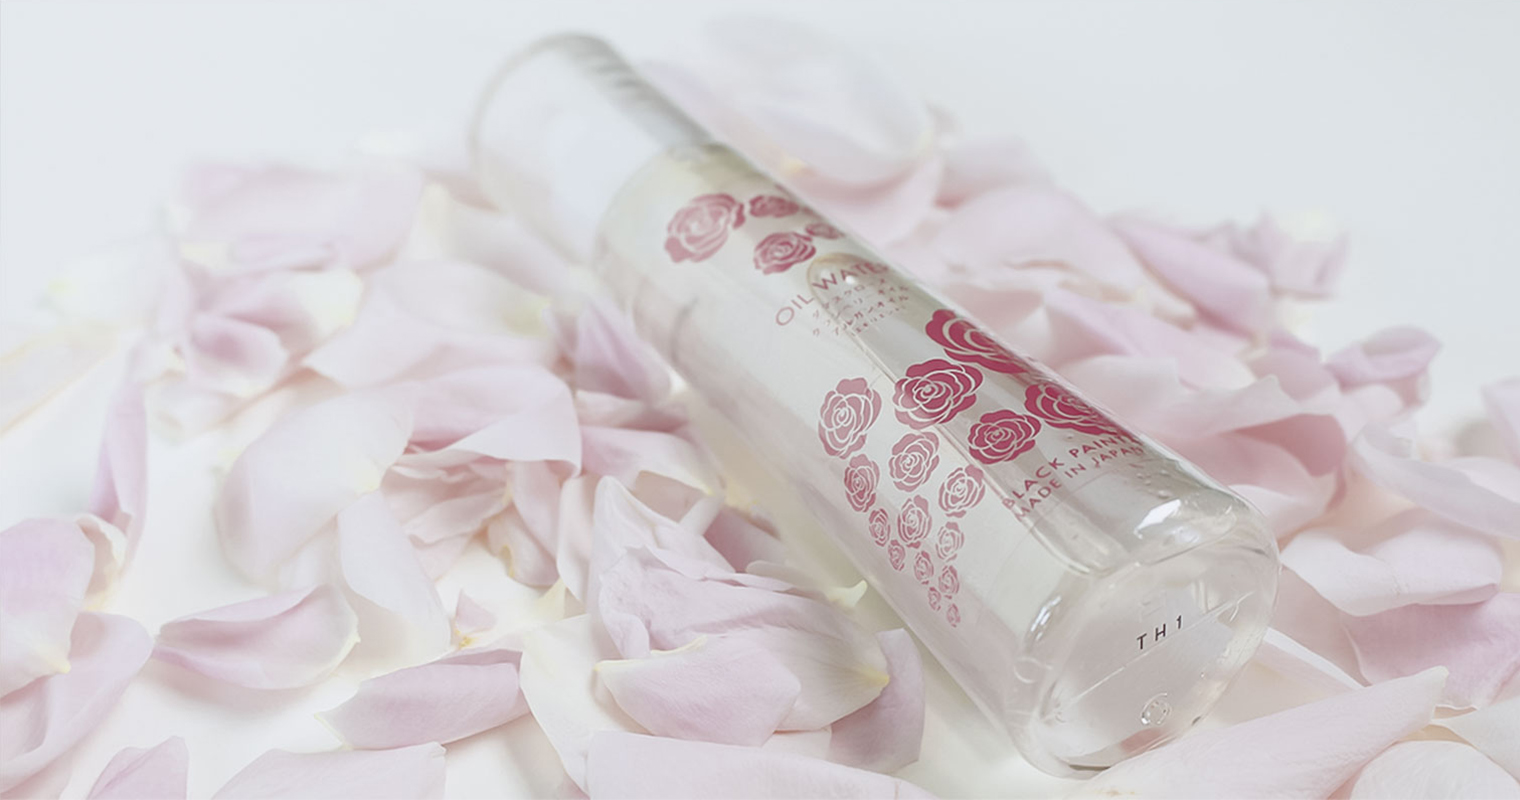 oil water rose bottle with rose petals